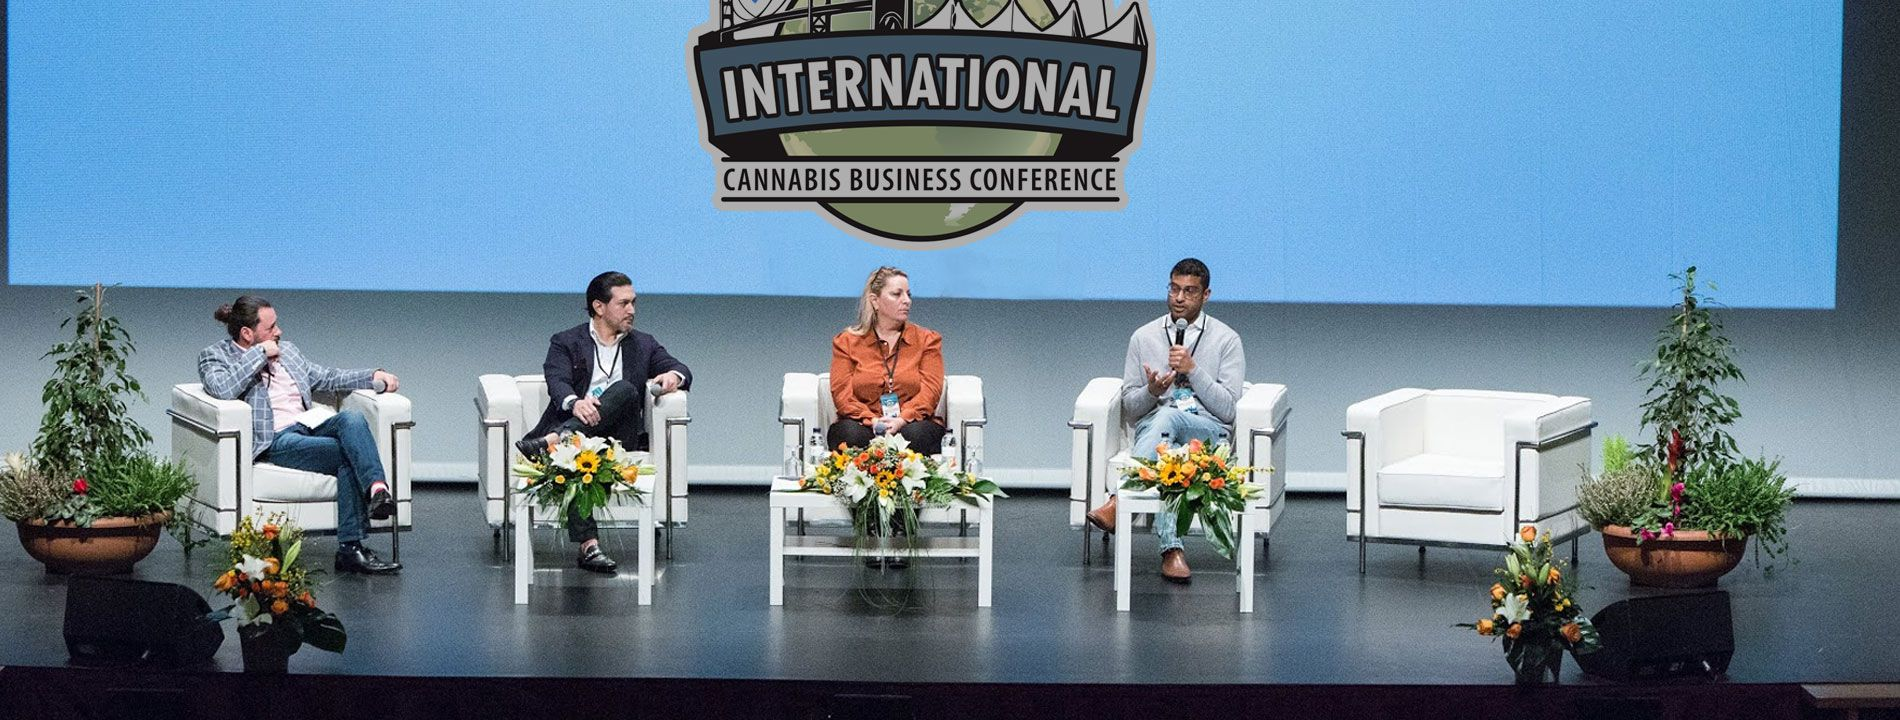 Barcelona International Cannabis Business Conference presenters